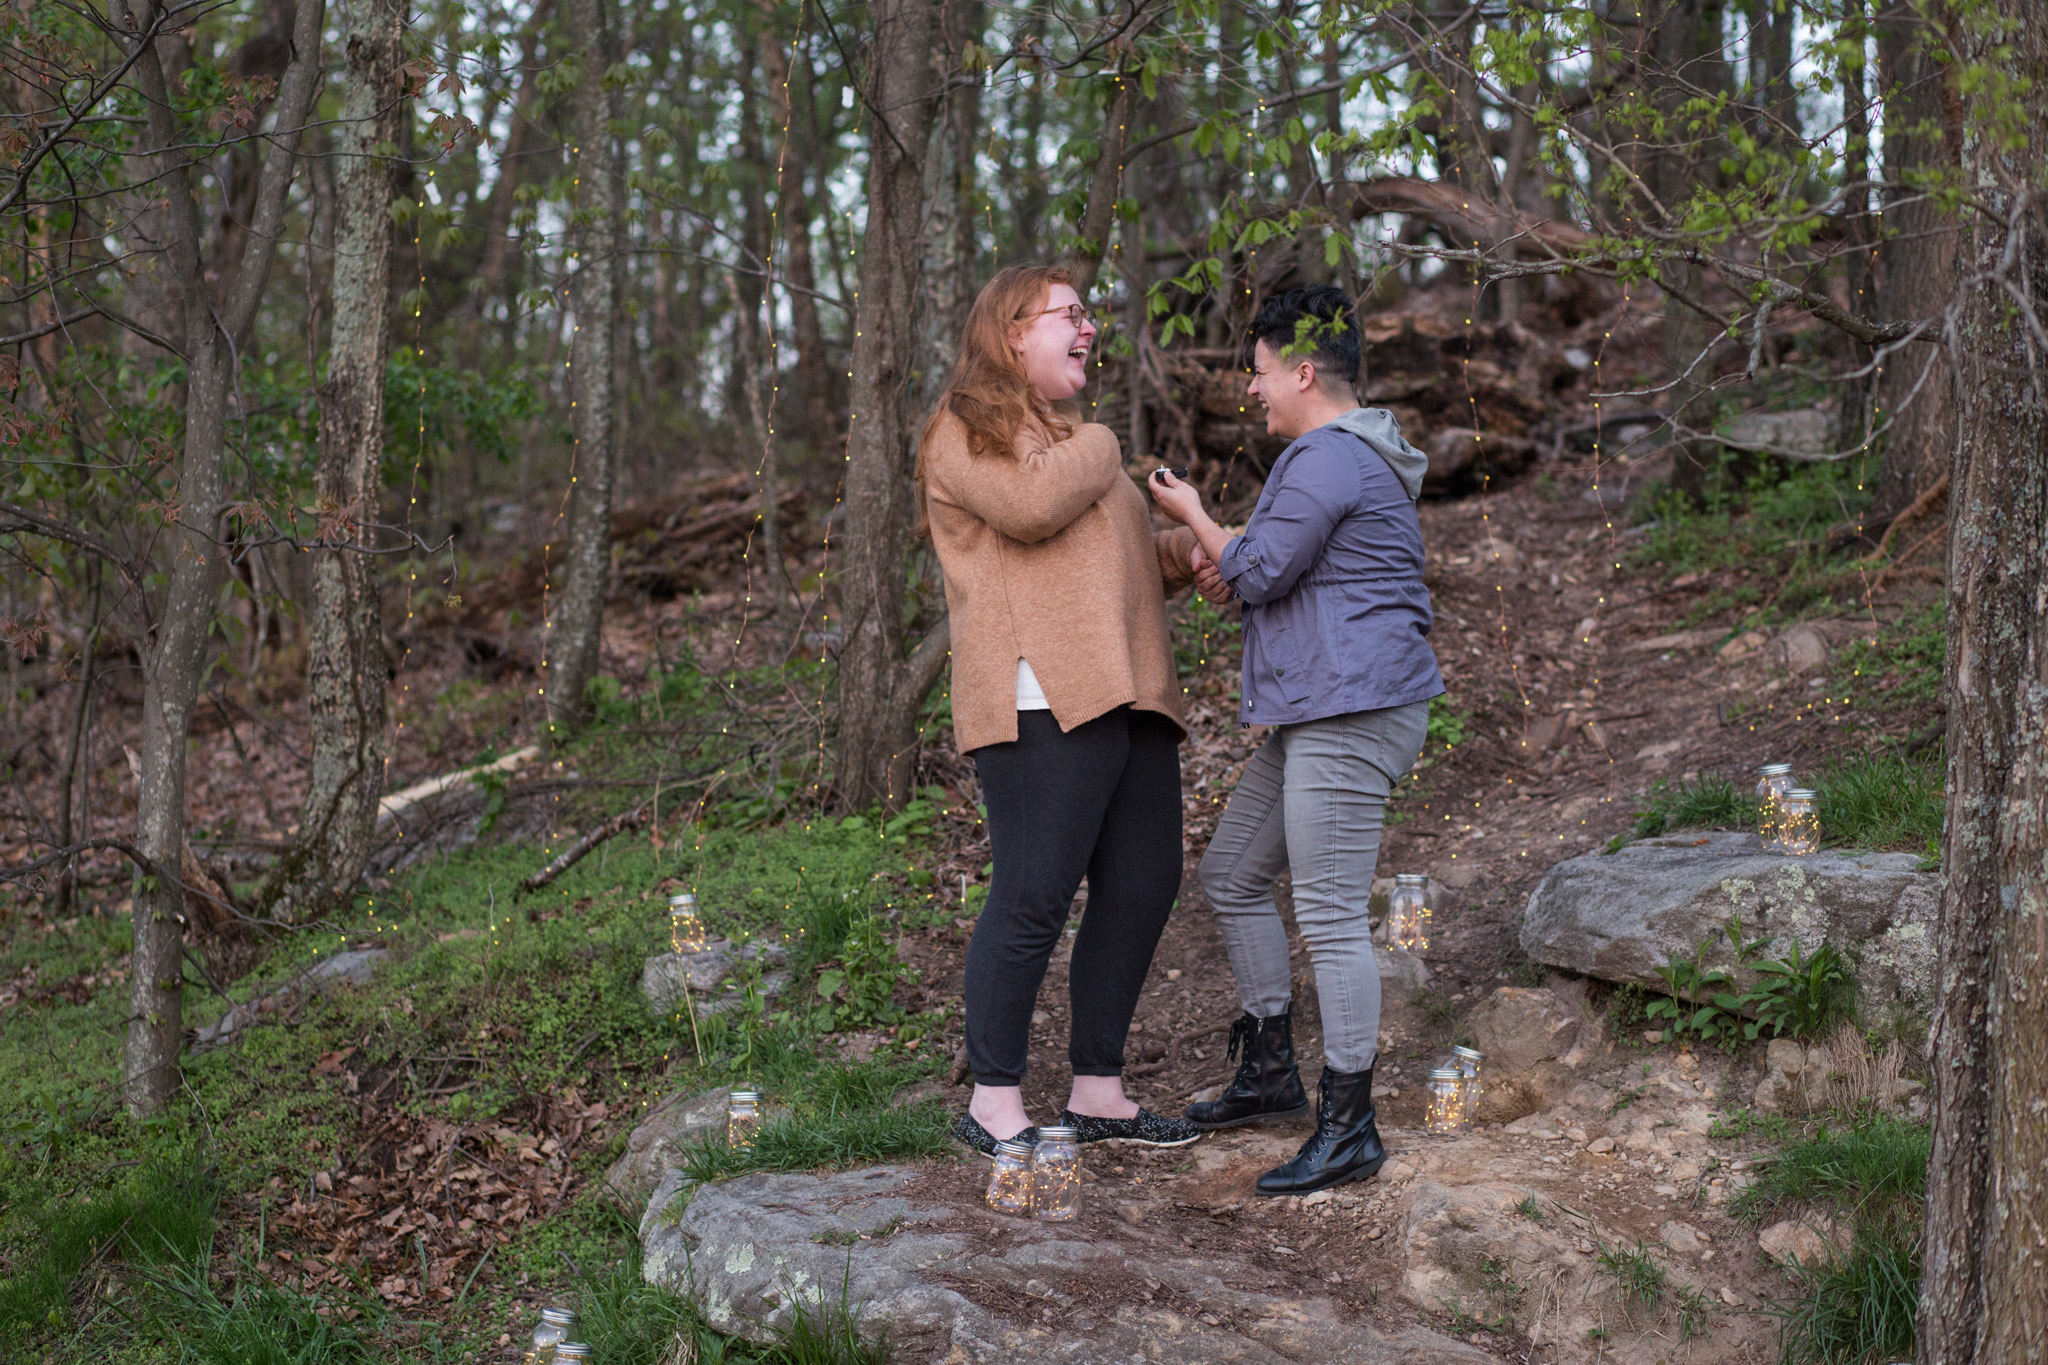 LightCreative_201904_AlexanBecky_Raleigh_Proposal_Photography_010_blog.jpg